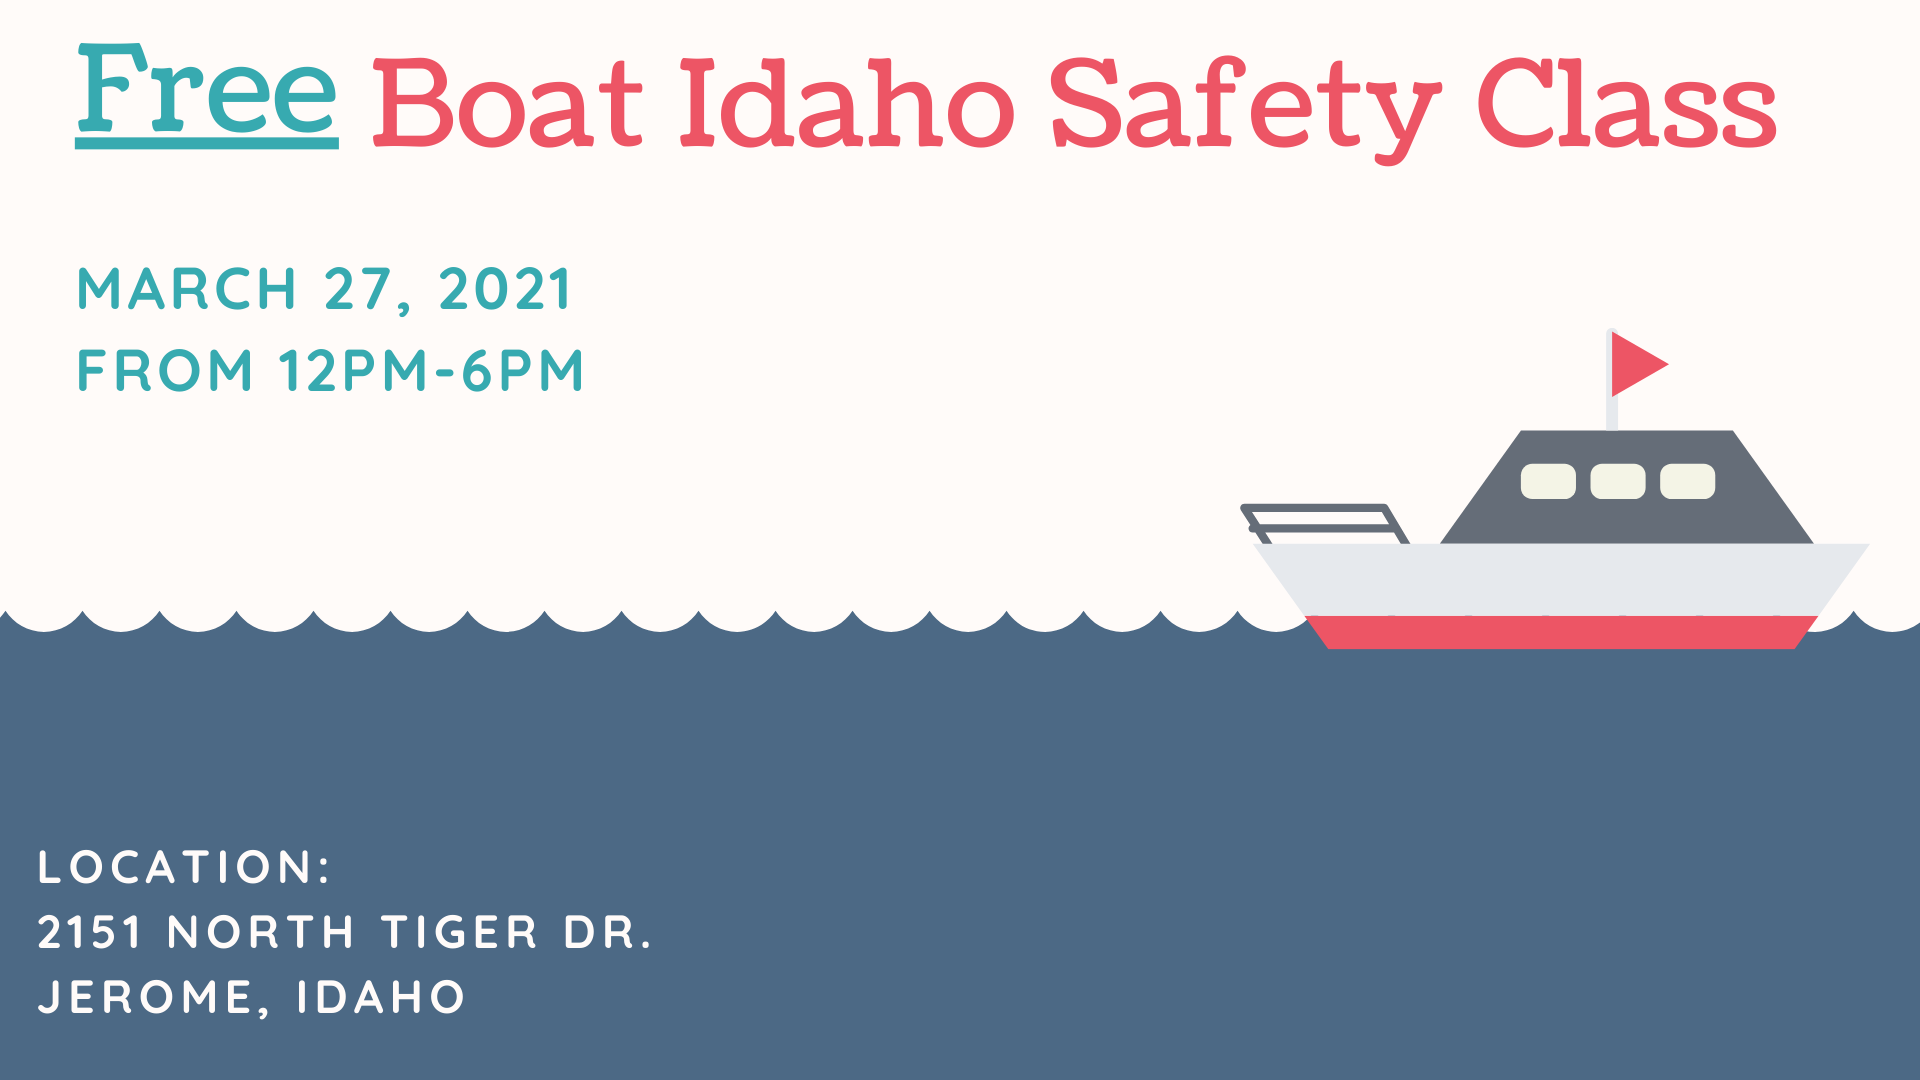 Boat Safety Class in Jerome County